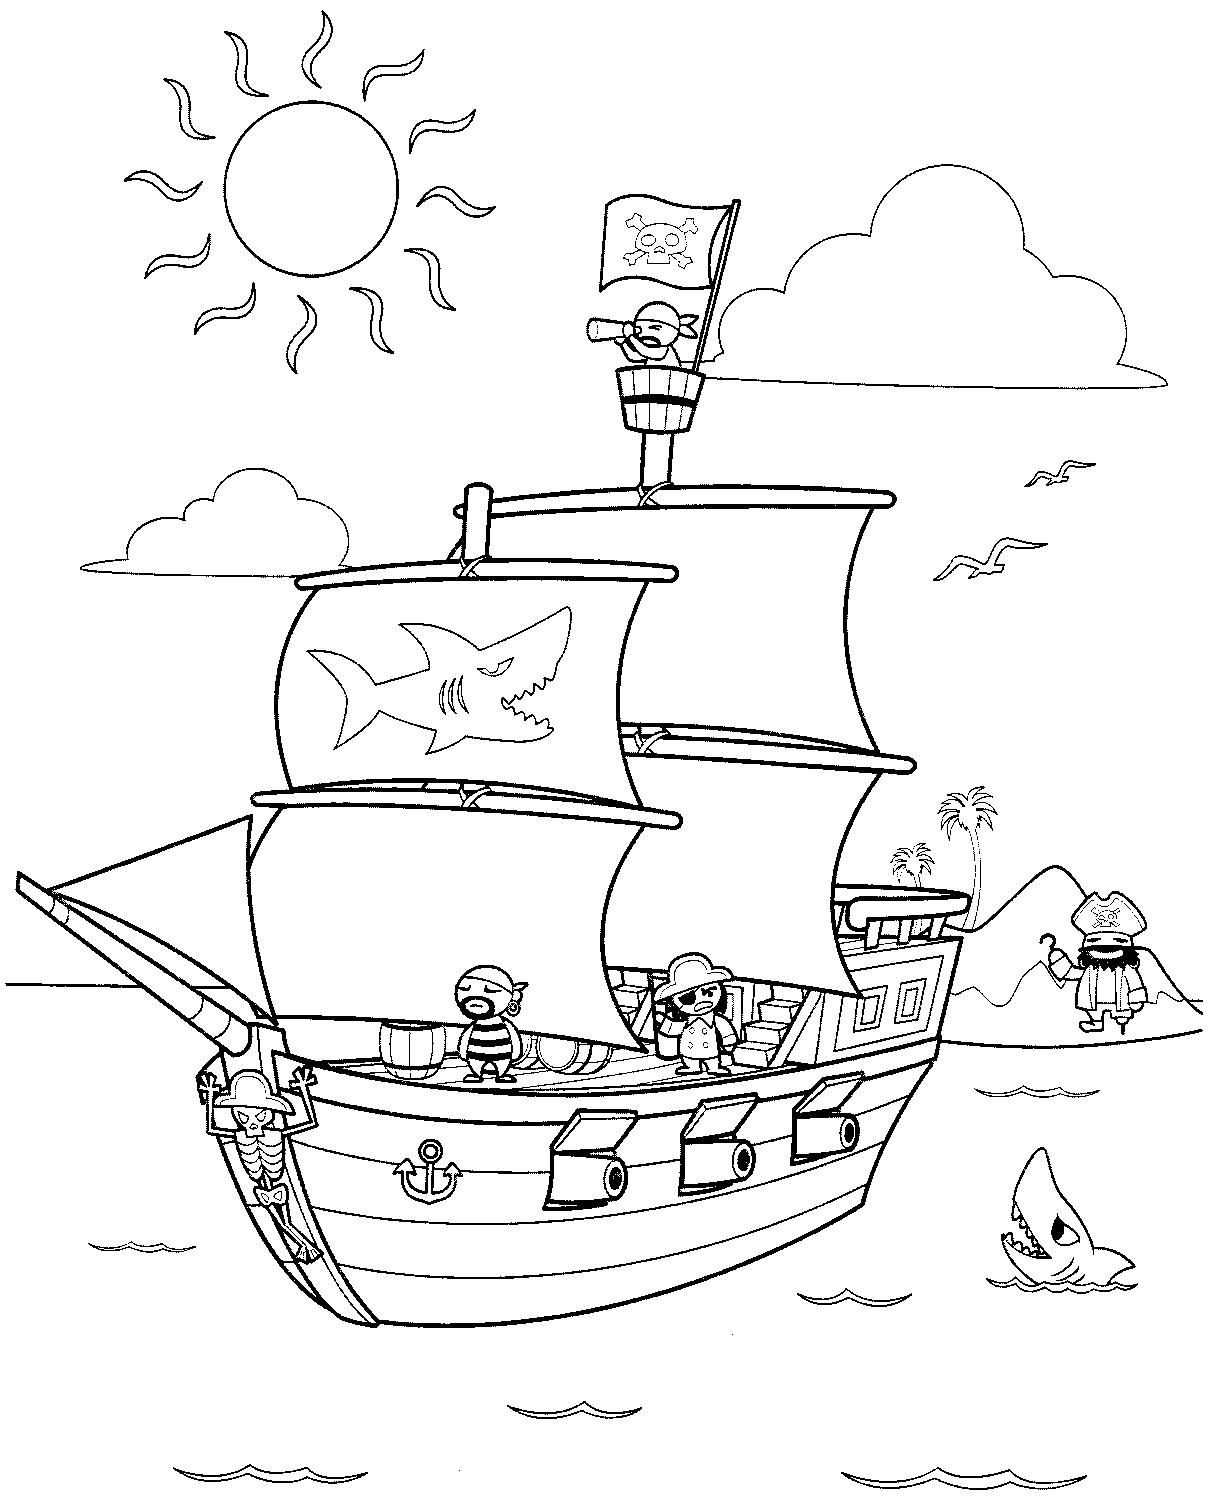 Pirate Coloring Pages Free Large Images Pirate Coloring Pages Coloring Pages Owl Coloring Pages